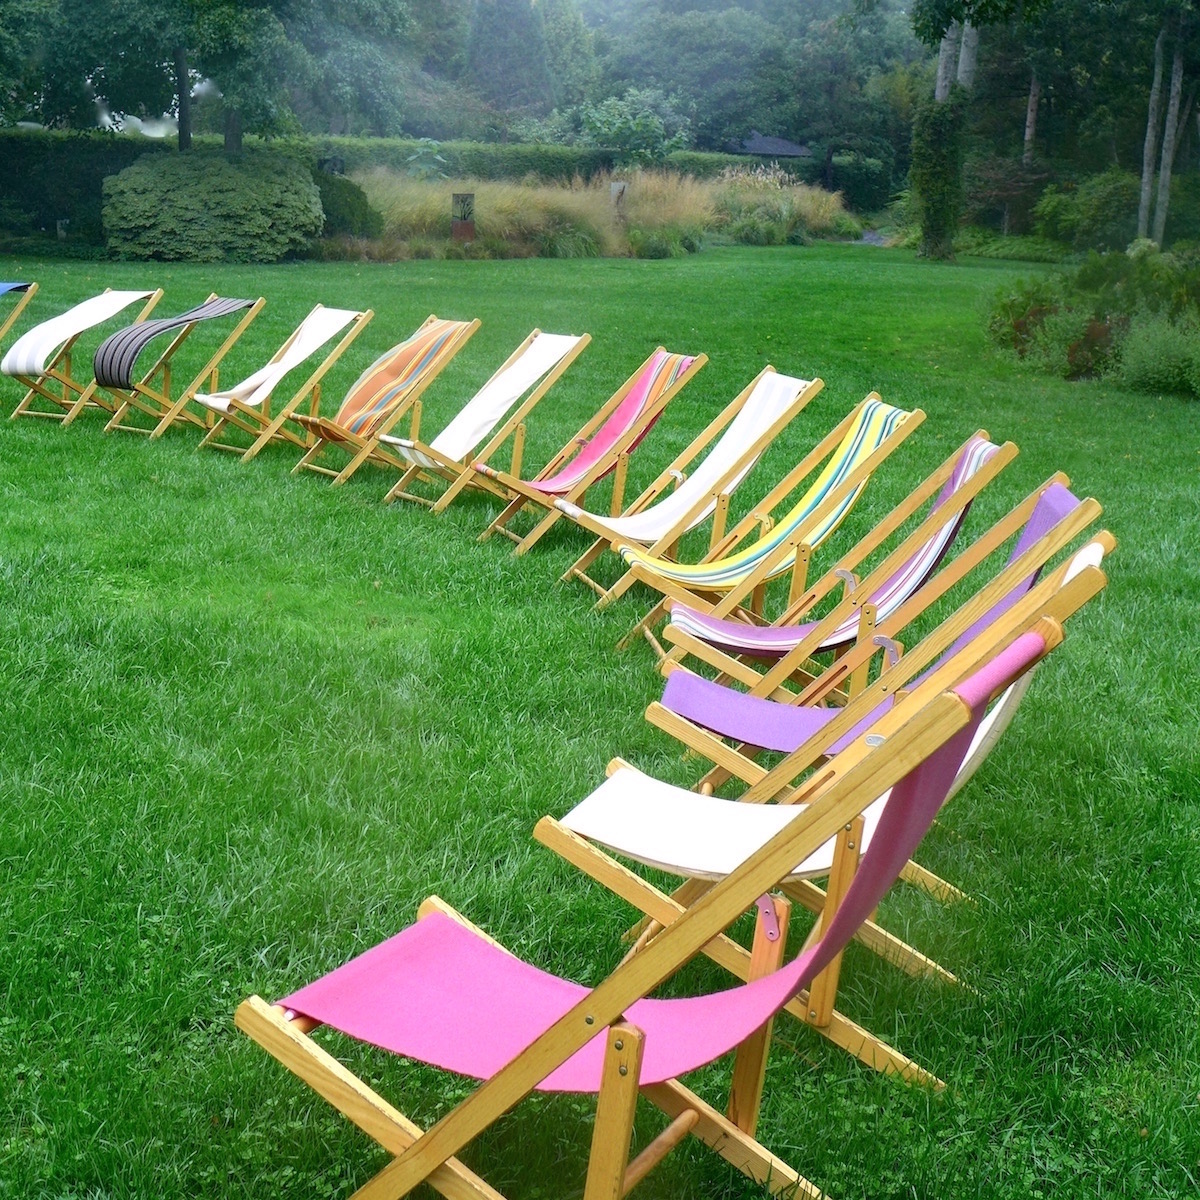 kantz-barbara-lawn-chairs